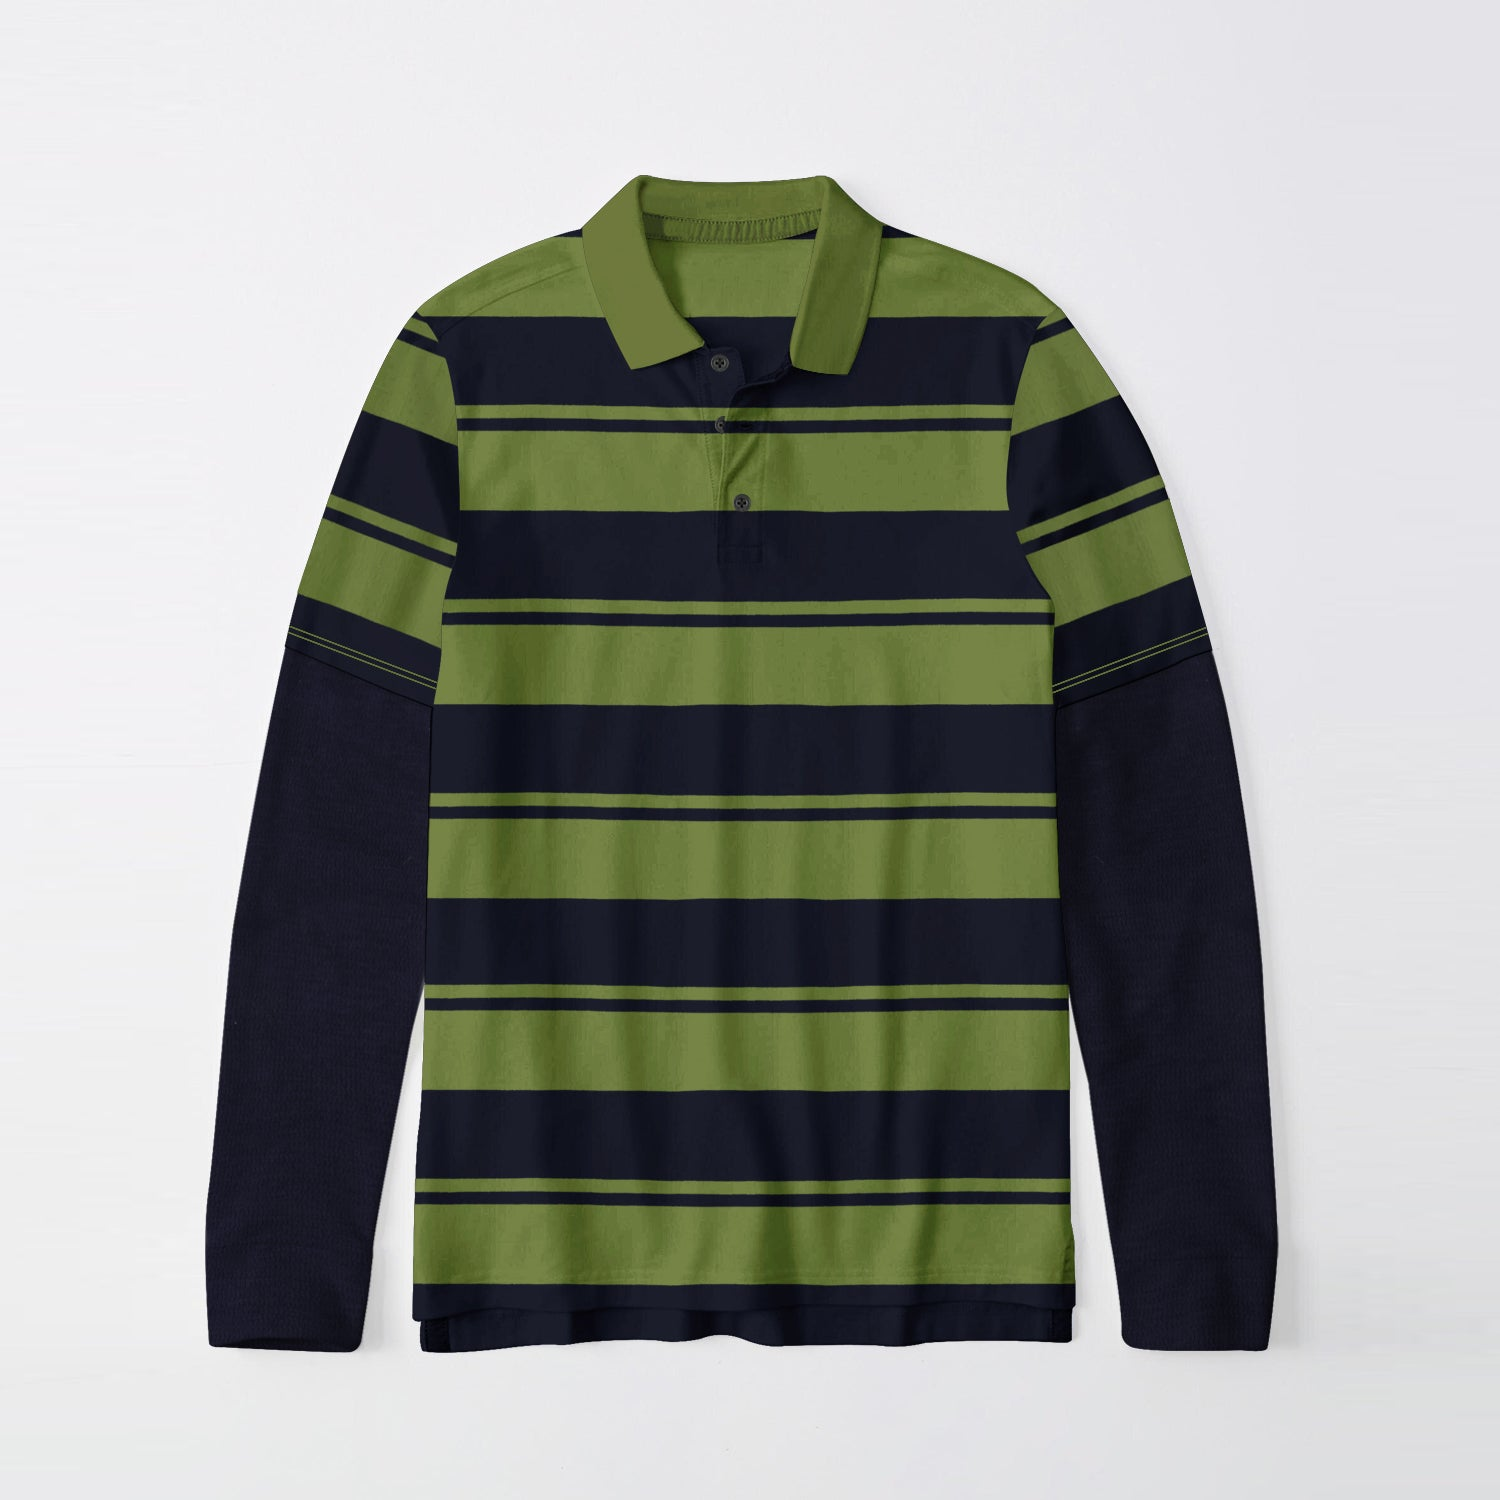 Next Single Jersey Long Sleeve Polo Shirt For Men-Dark Navy & Green Stripe-BE9396